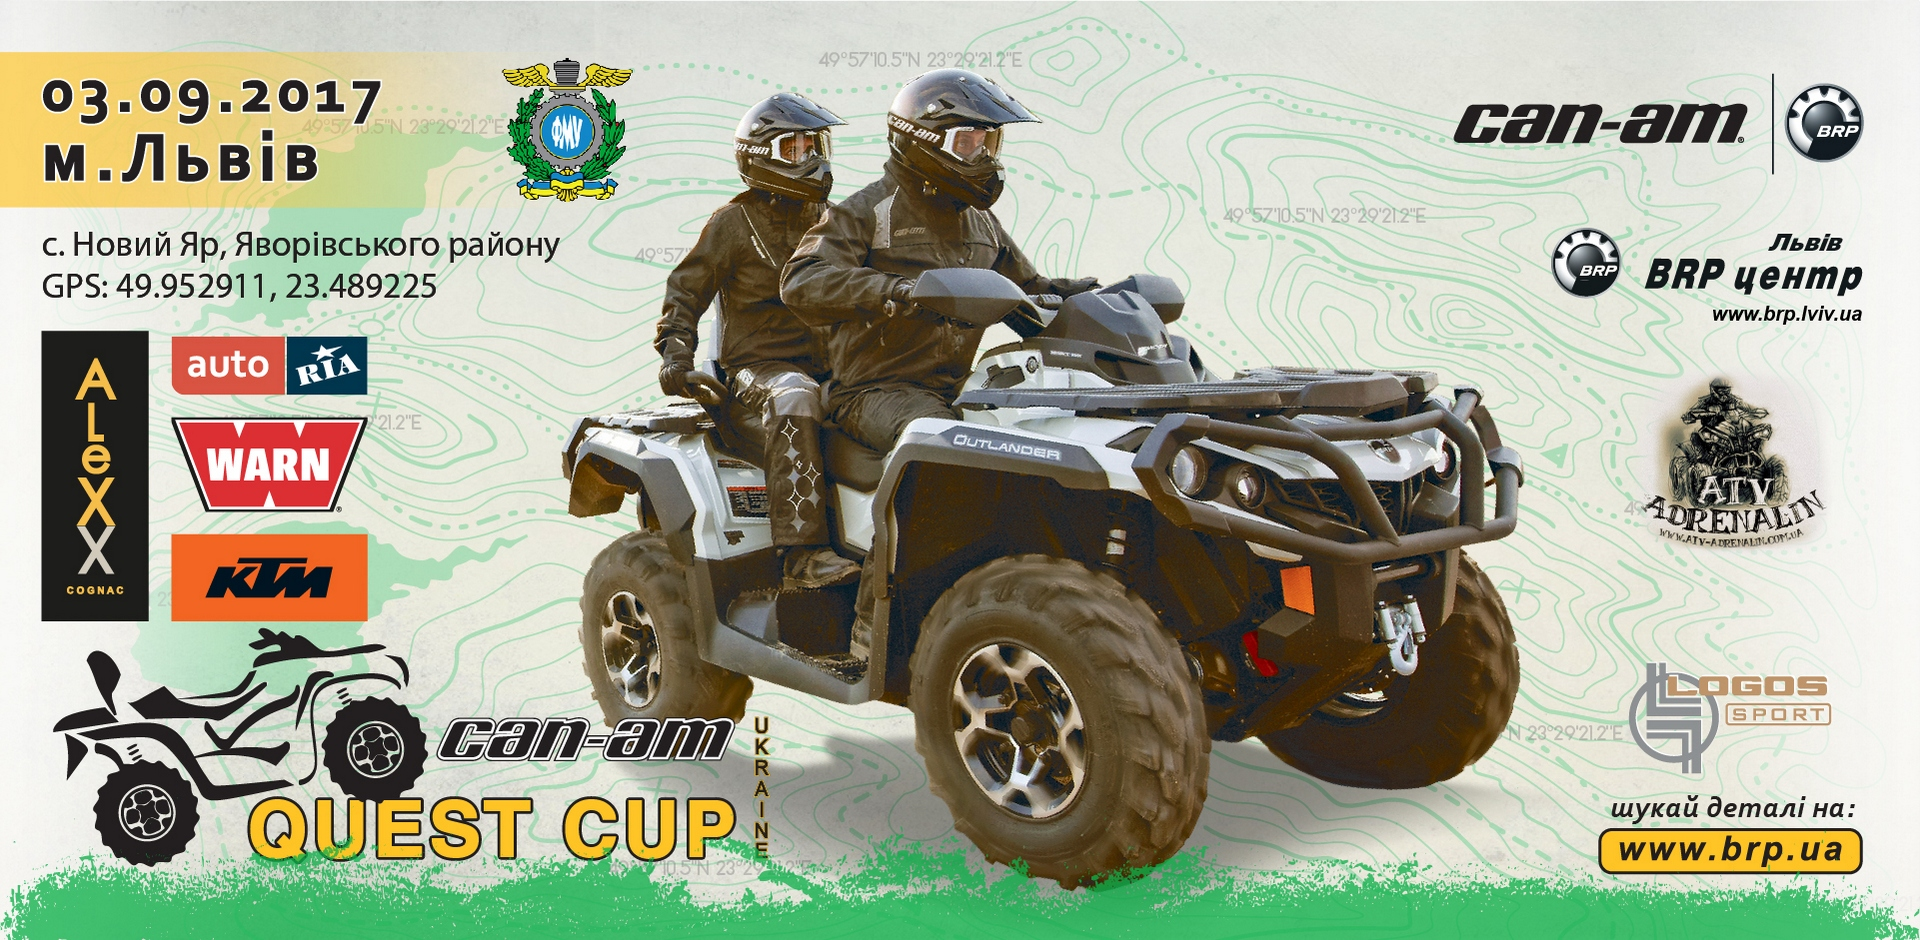 6-й этап серии «CAN-AM QUEST CUP»! Львов. 03.09.2017